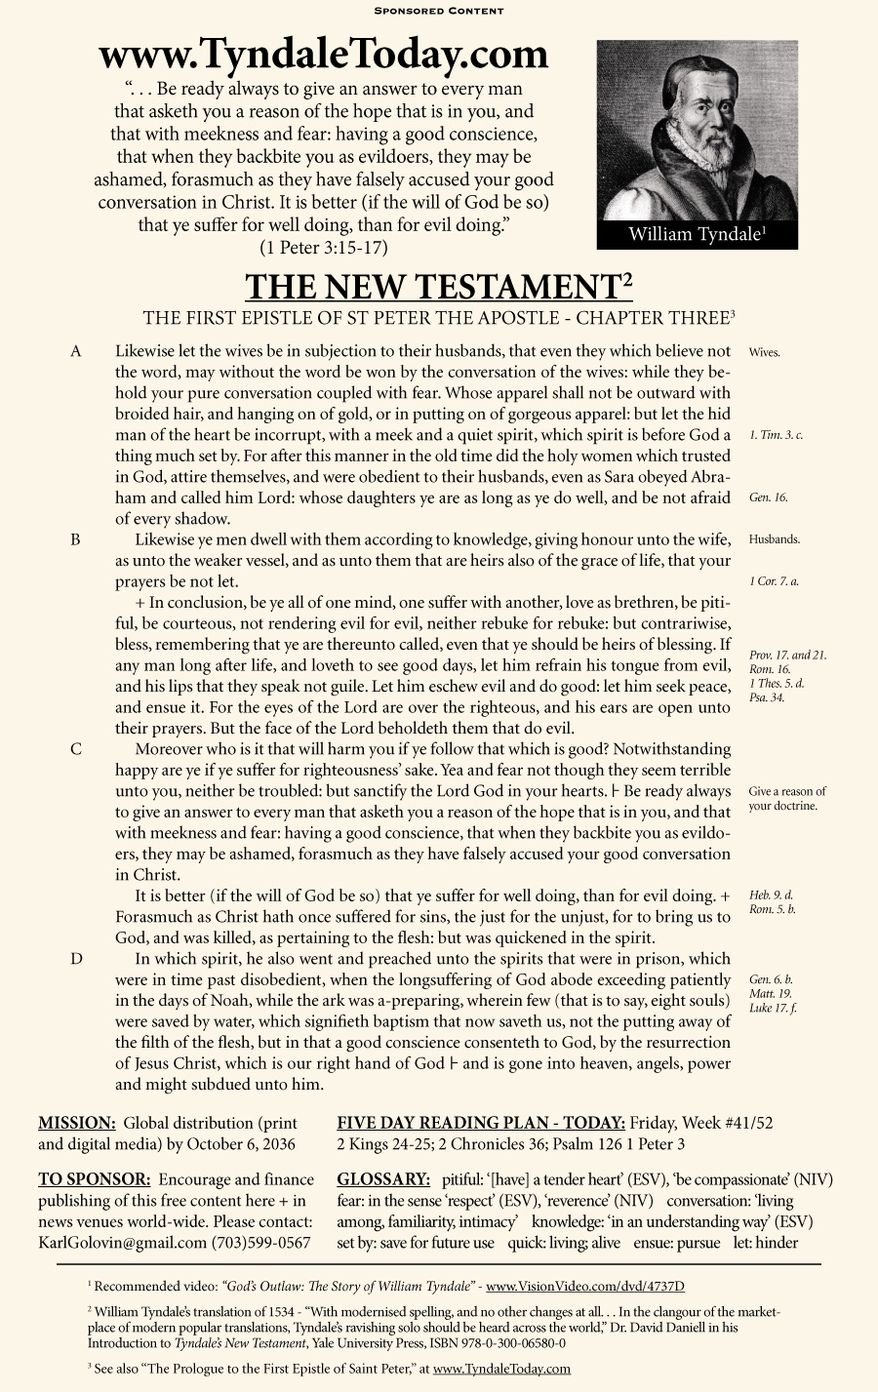 A daily reading of William Tyndale's 1534 translation of The New Testament from Tyndale Today. (Sponsored content October 13, 2017 in The Washington Times)